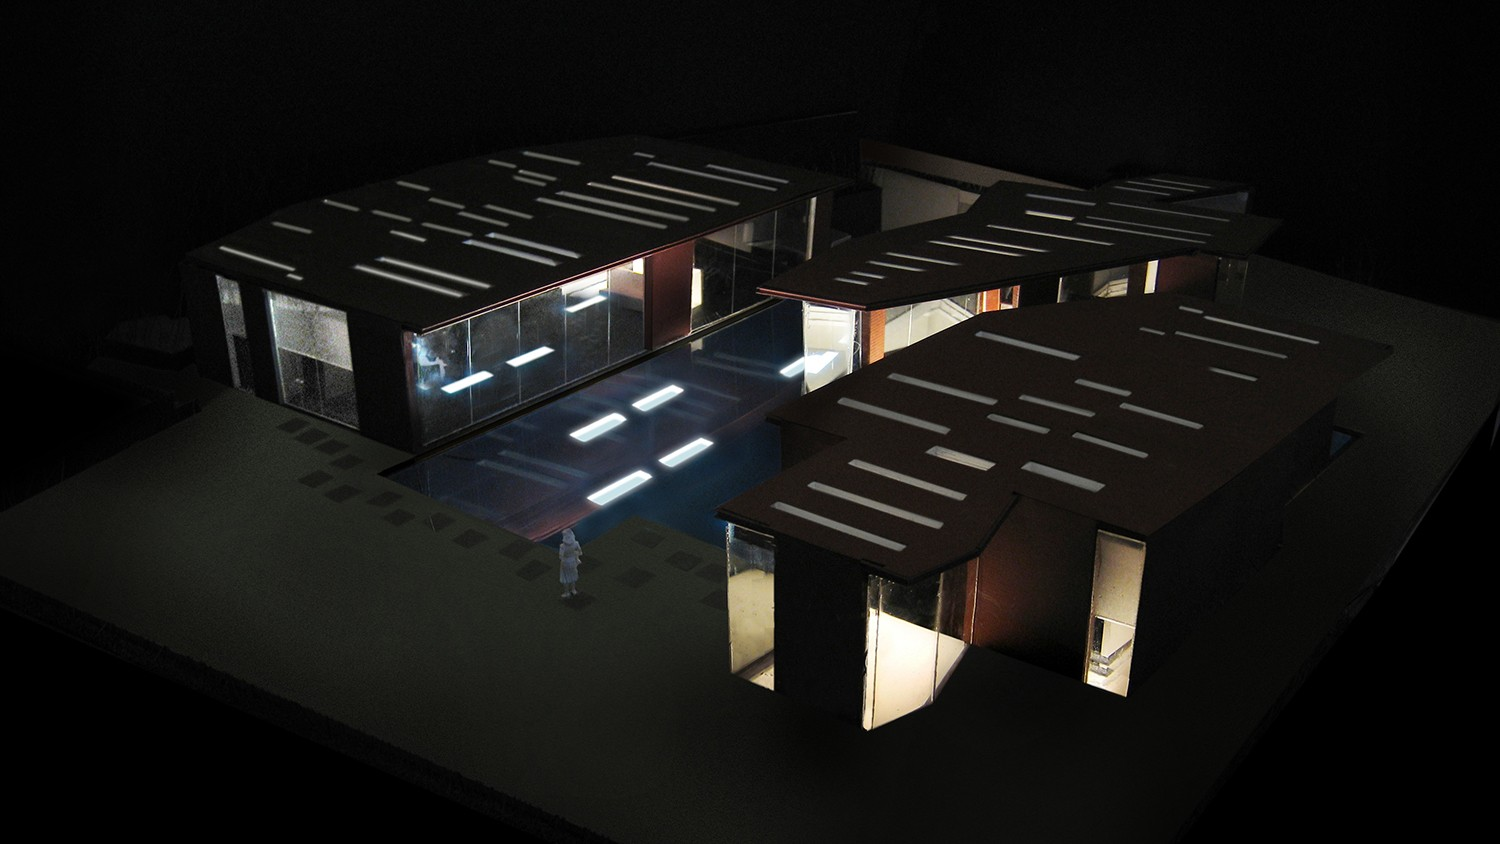 https://s3.us-east-2.amazonaws.com/steven-holl/uploads/projects/project-images/StevenHollArchitects_Daeyang_Night 06_2_WH.jpg